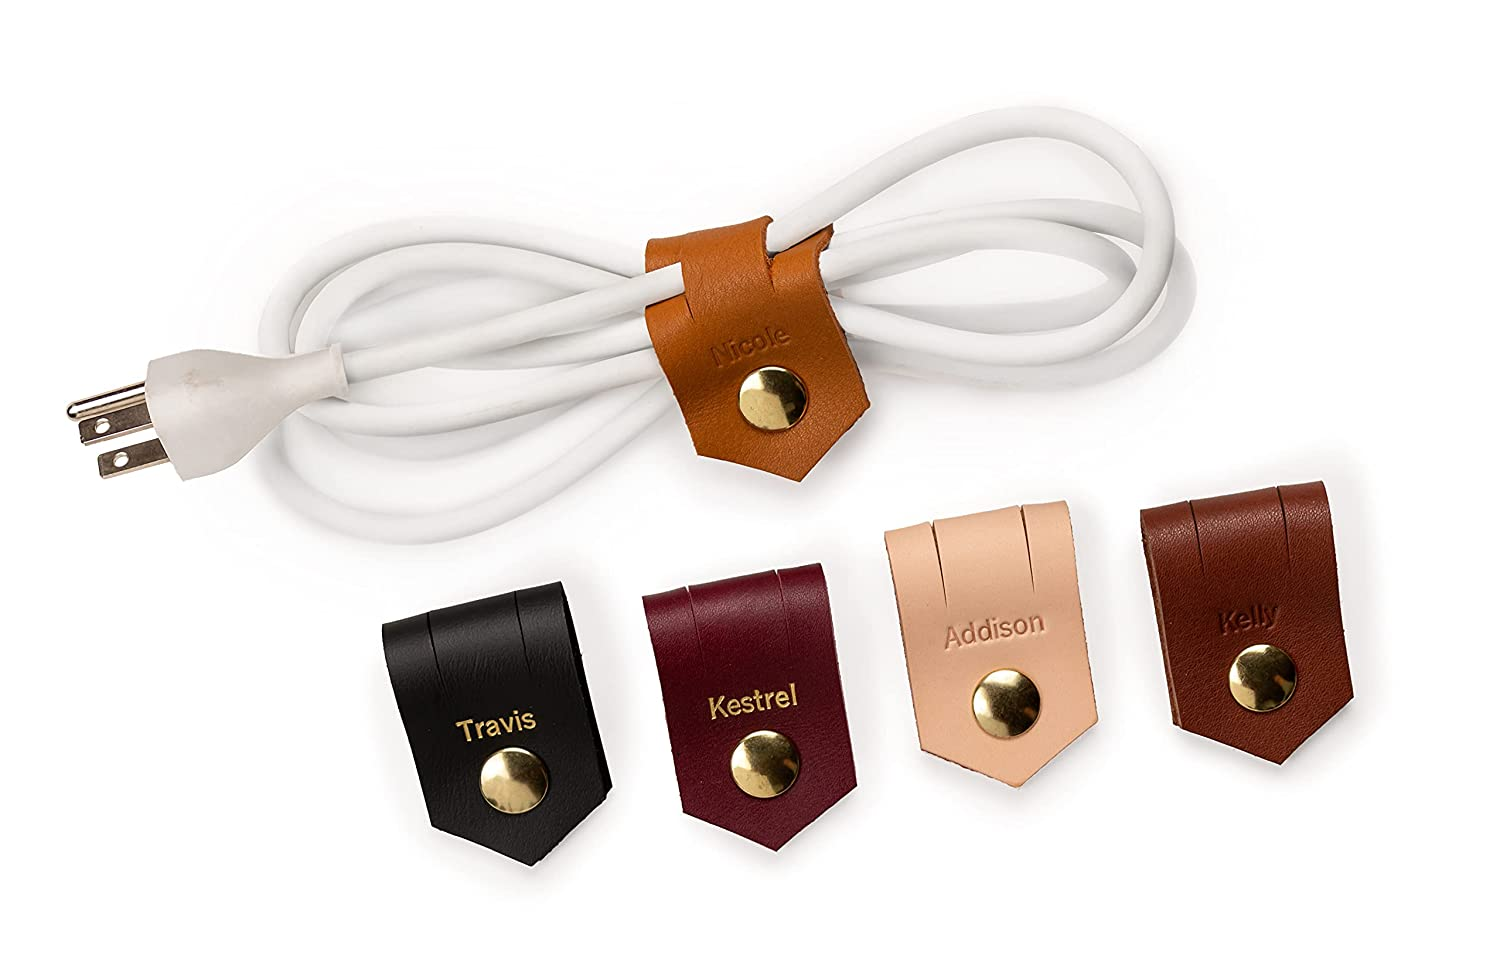 online shop KEYAIIRA - Large Personalized Leather Cable Sna Holder discount Gold with